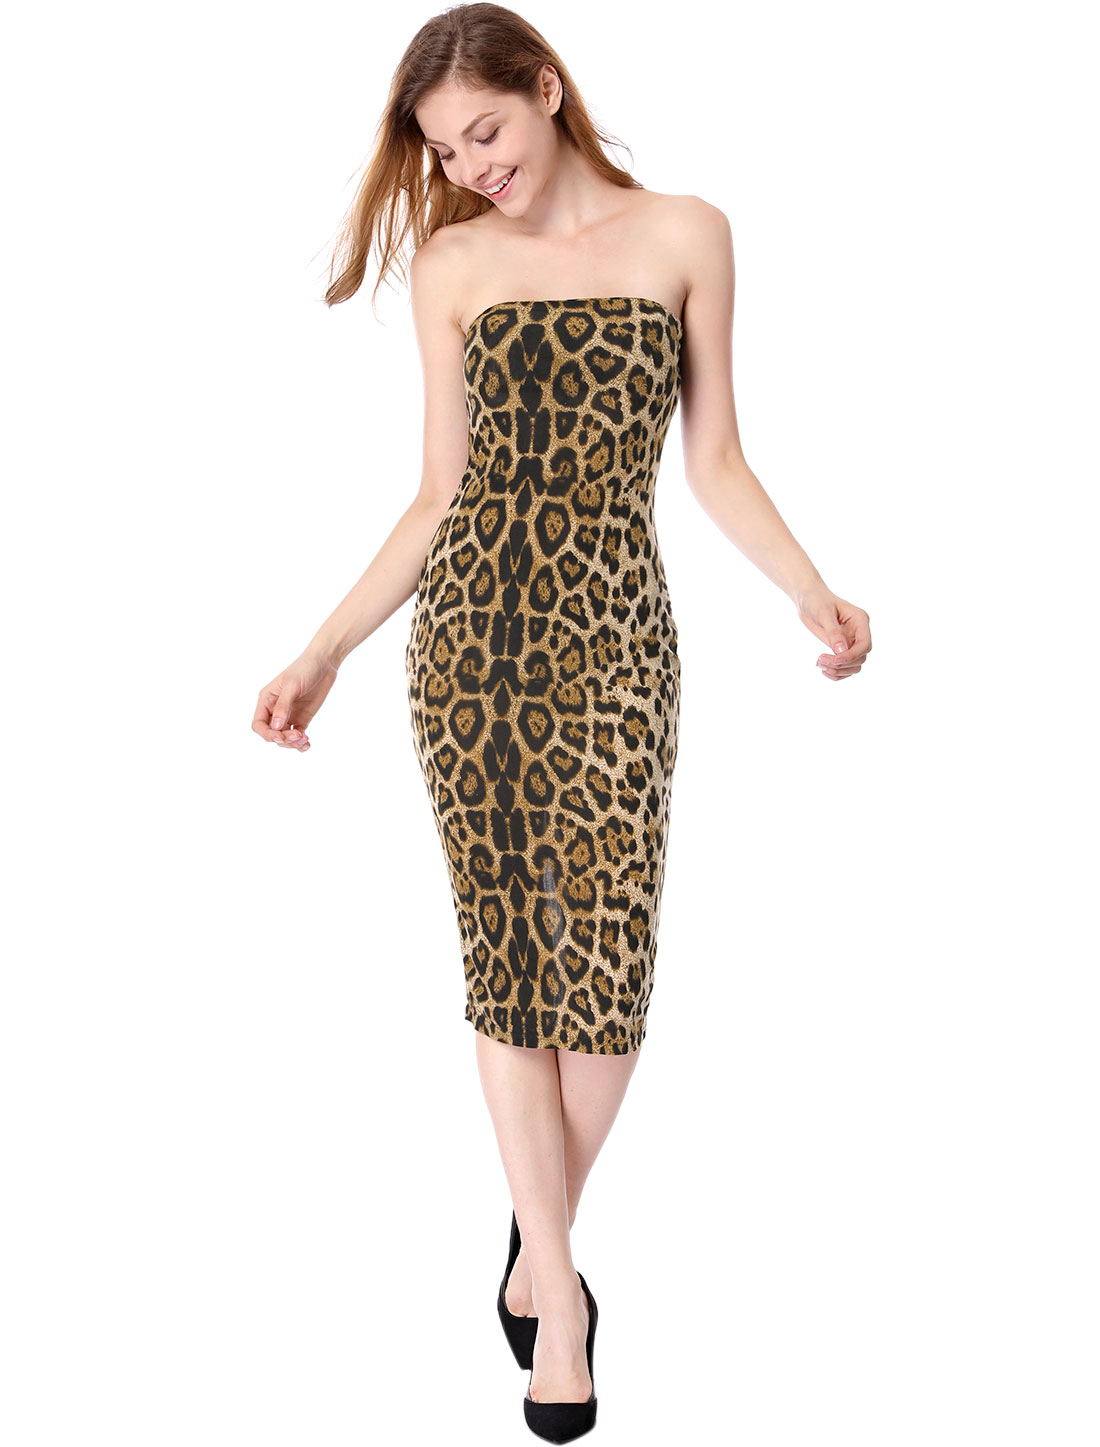 Women Stylish Coffee Color Leopard Printed Slim Fit Tube Dress L